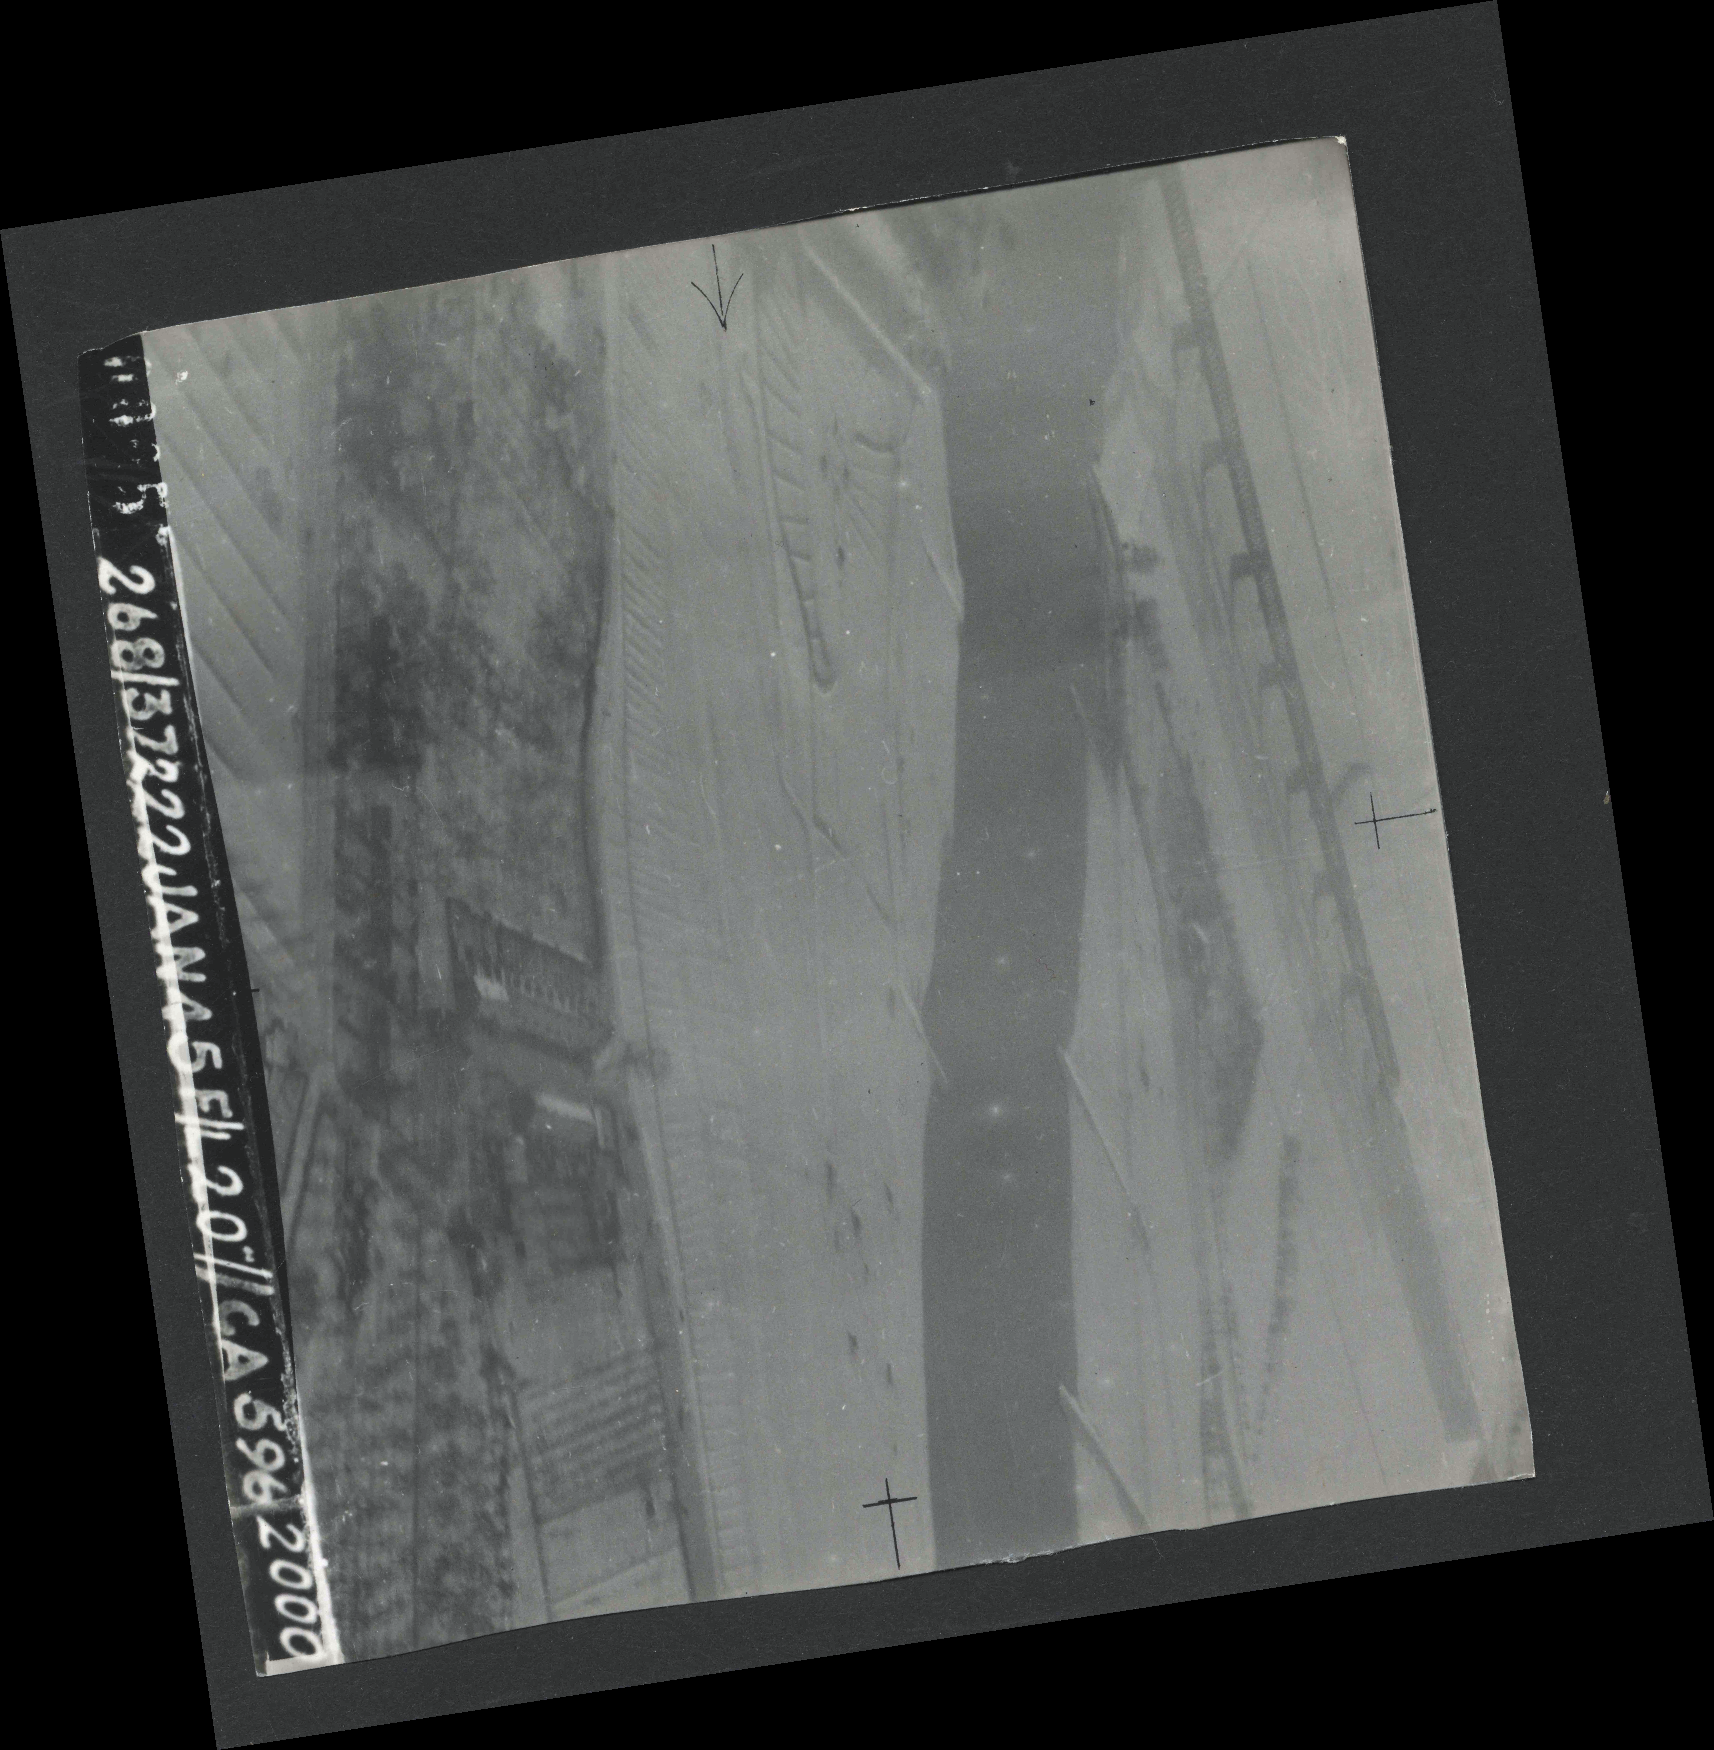 Collection RAF aerial photos 1940-1945 - flight 508, run 01, photo 0005